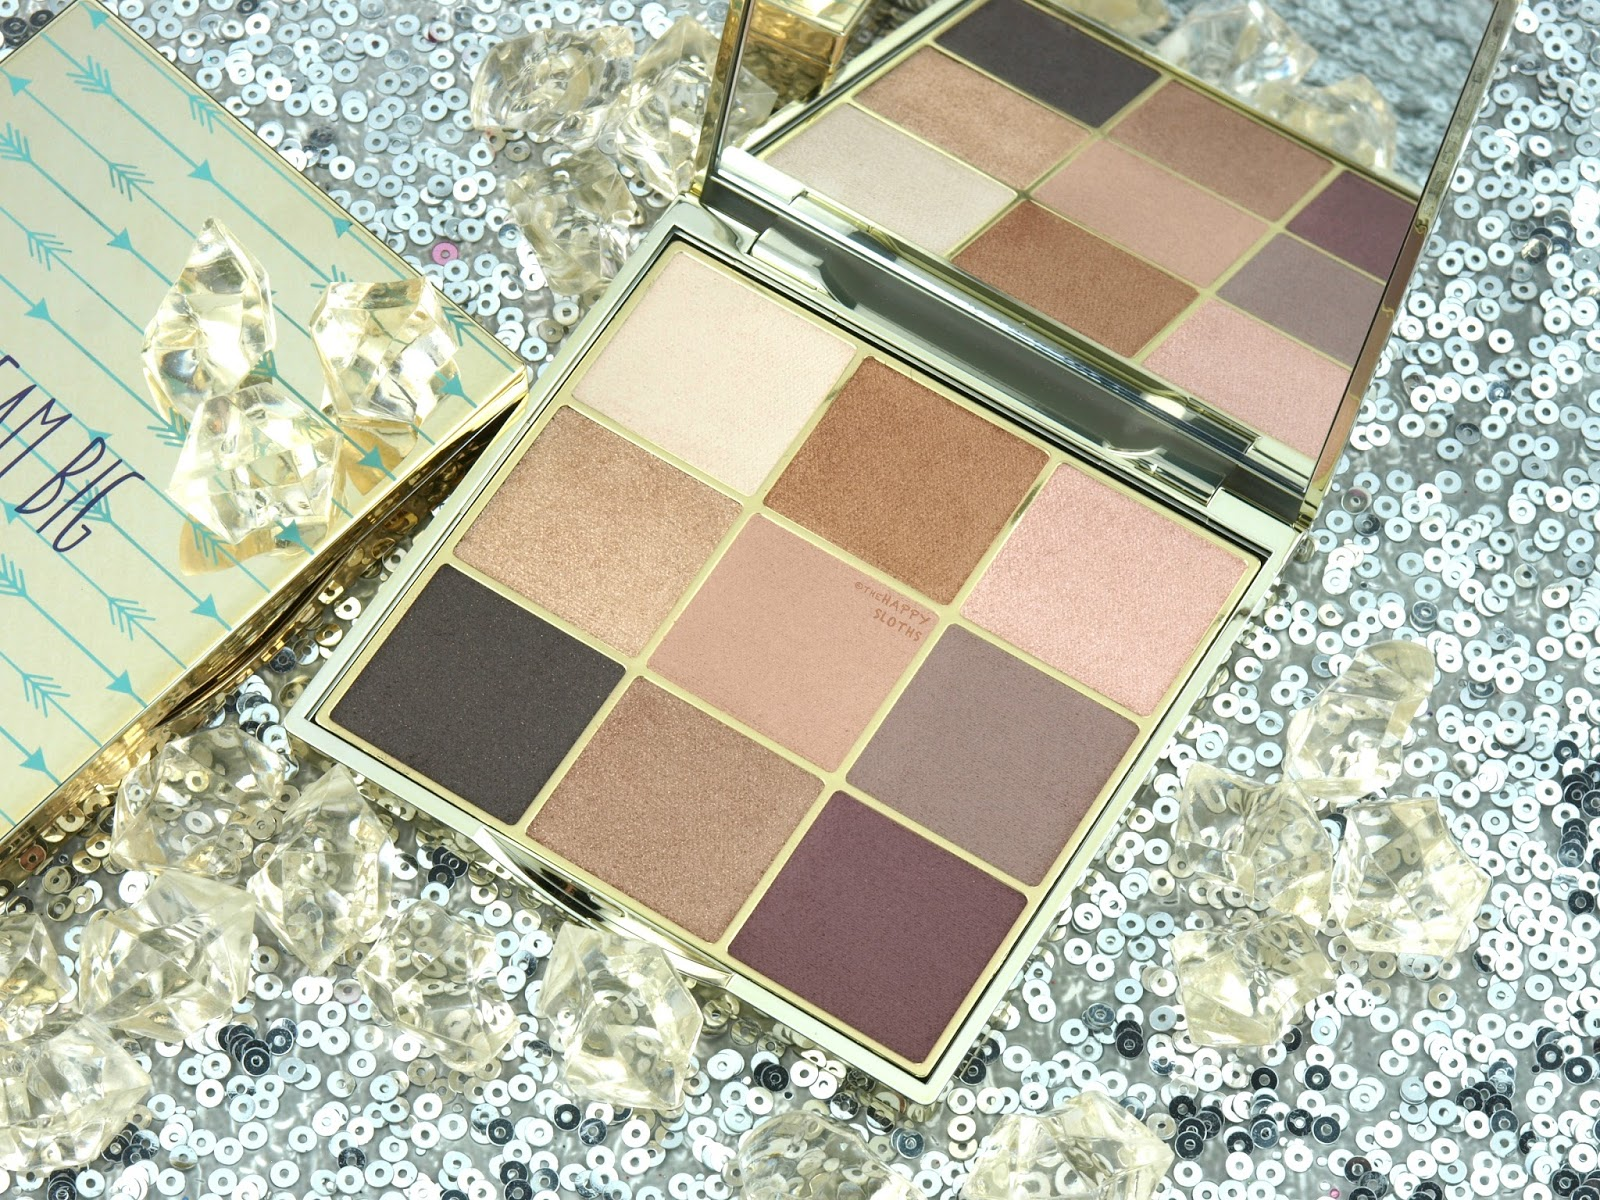 Tarte Make Magic Happen Amazonian Clay Eyeshadow Palette: Review and Swatches